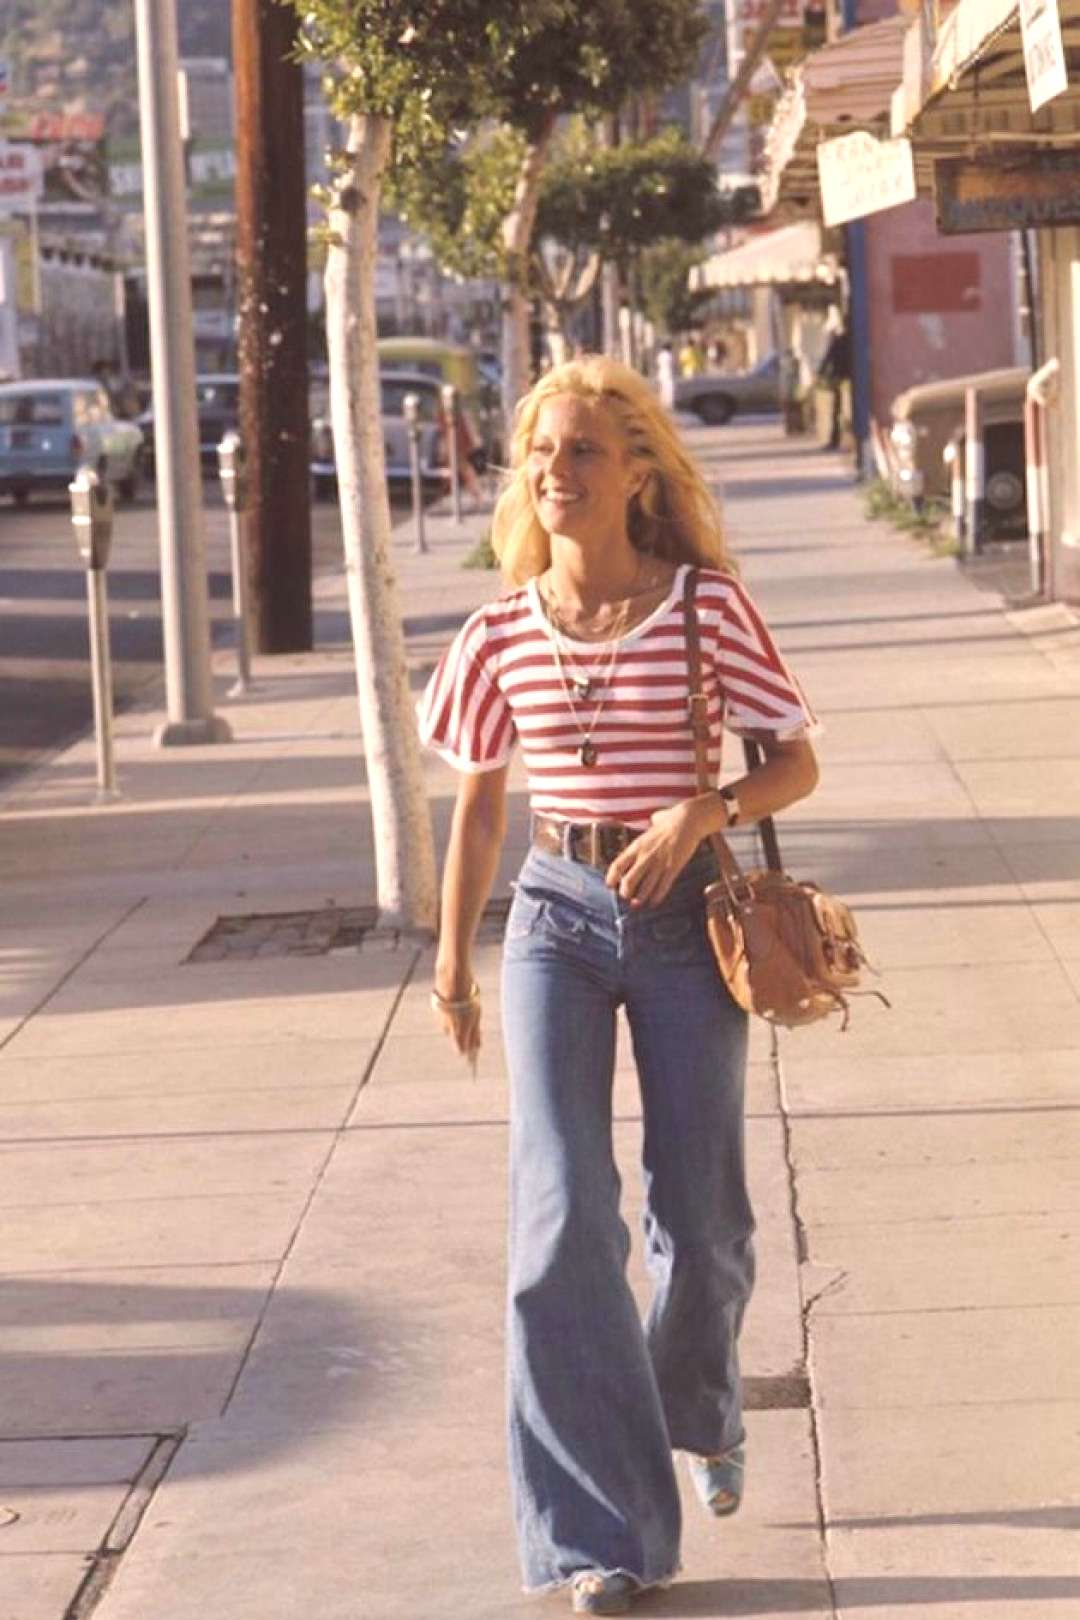 24 Incredible Street Style Shots from the 1970s